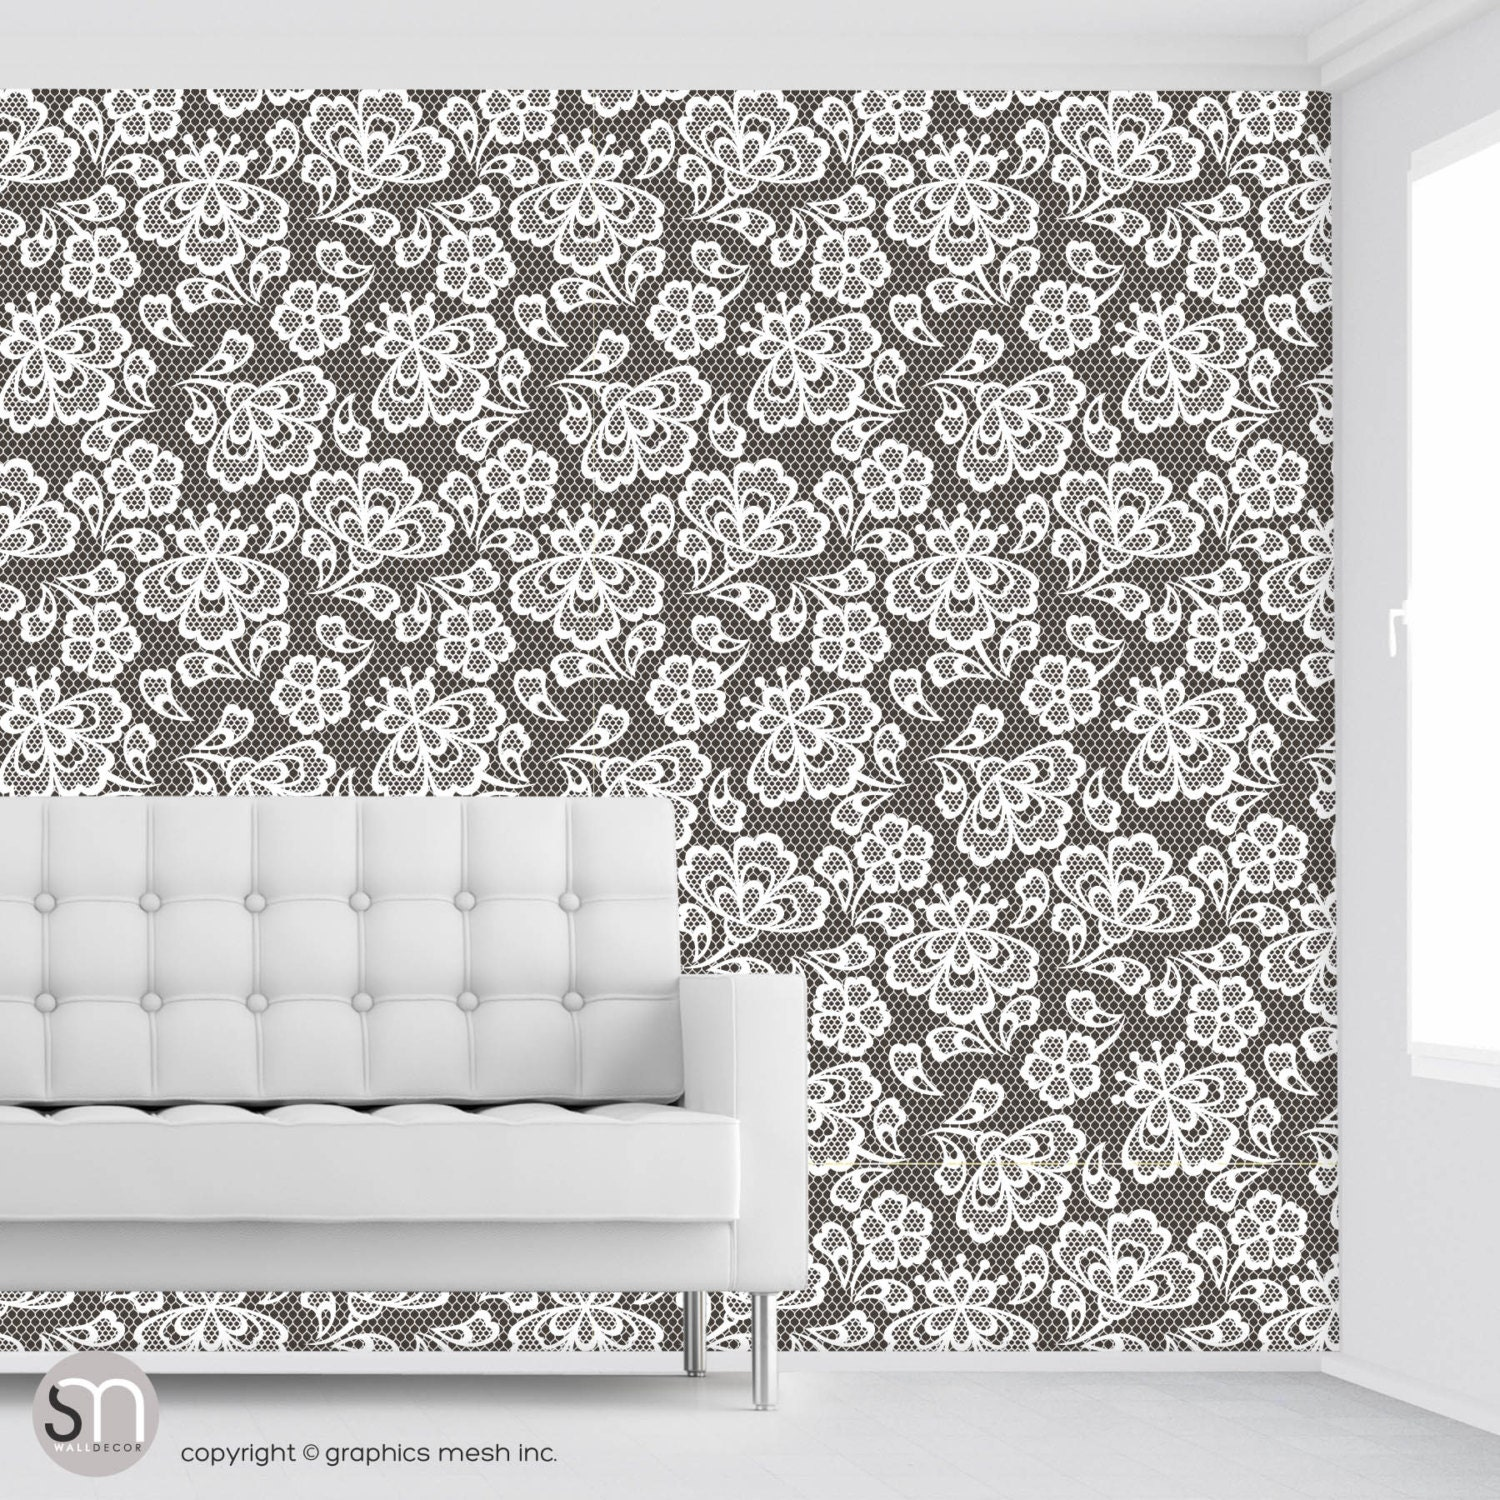 Dark Embroidery Self Adhesive Removable Fabric Wallpaper By